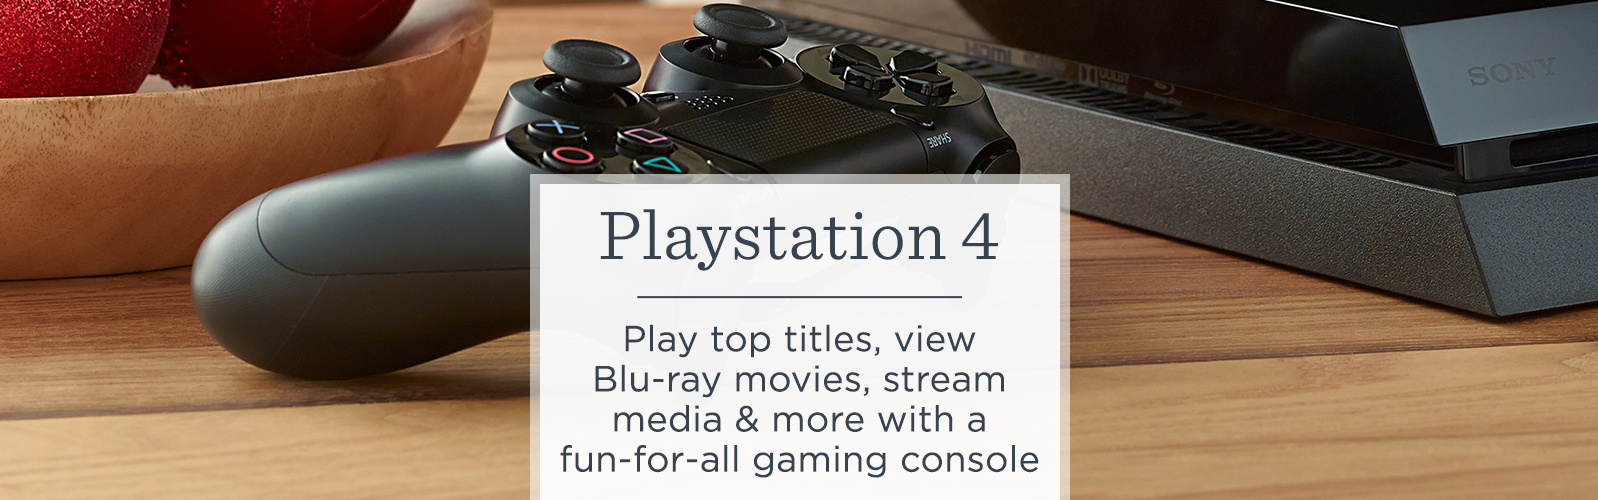 PlayStation 4, Play top titles, view Blu-ray movies, stream media & more with a fun-for-all gaming console